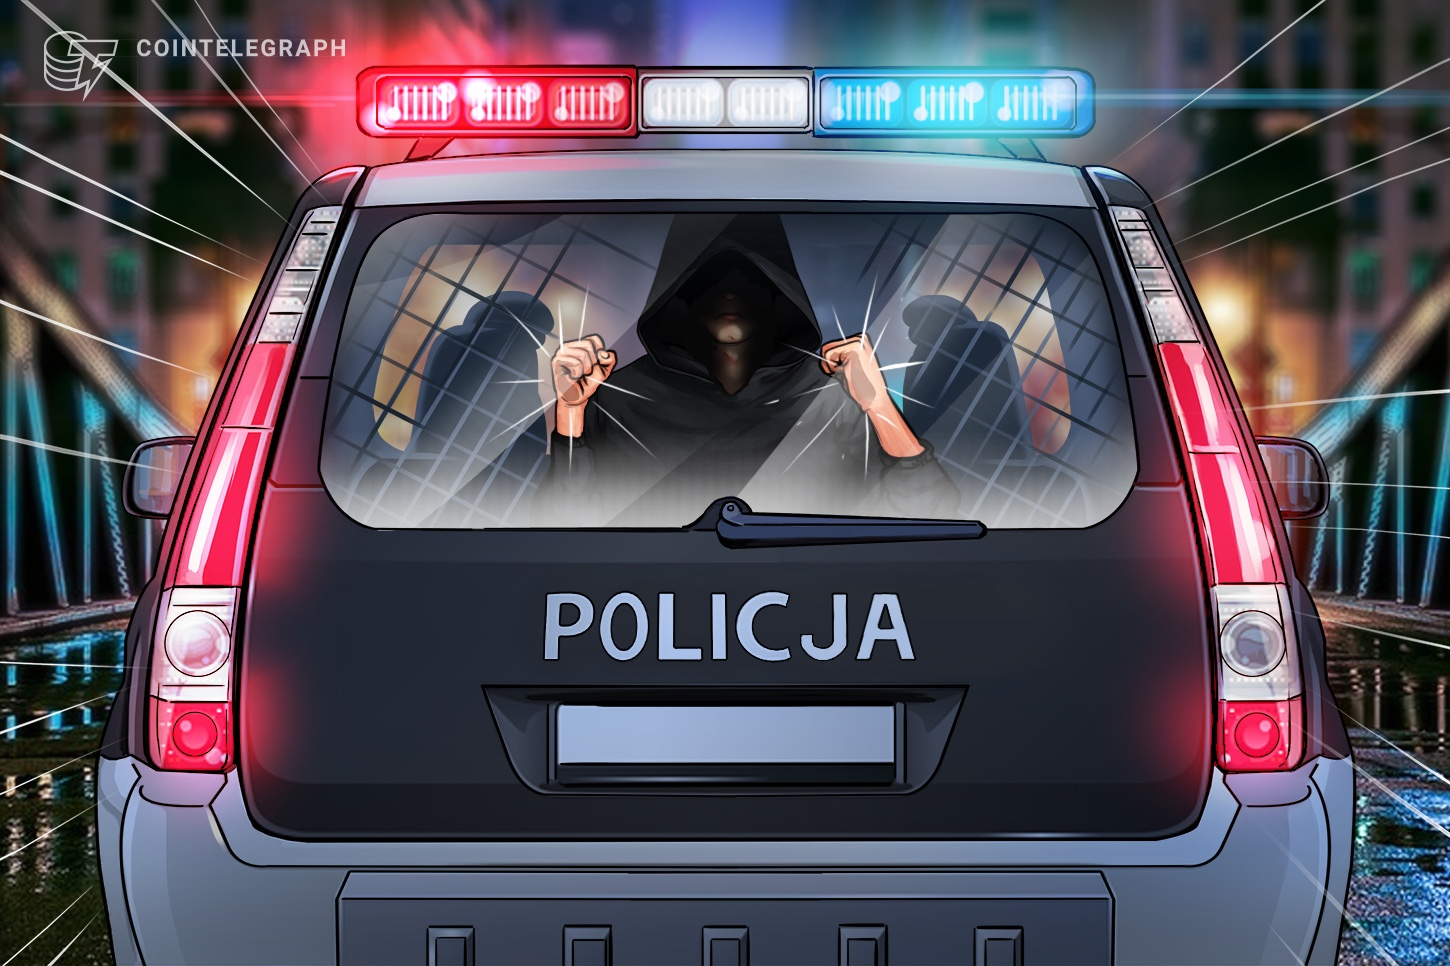 Former chief of Russia's Wex crypto exchange arrested in Poland